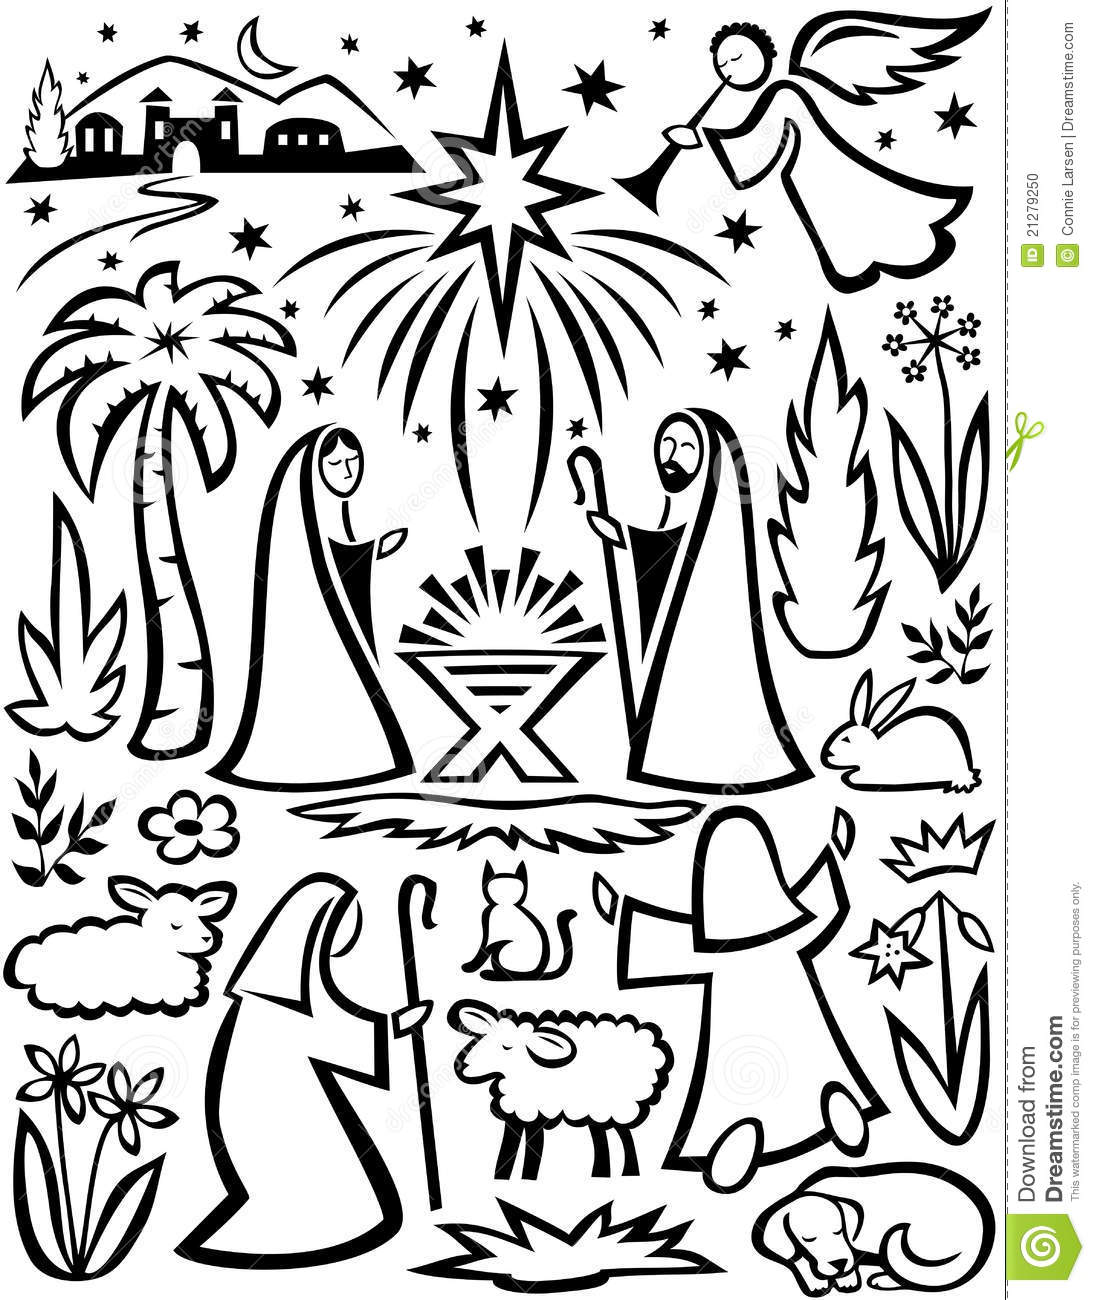 Abstract Illustration Of A Nativity Scene In Block Print Style